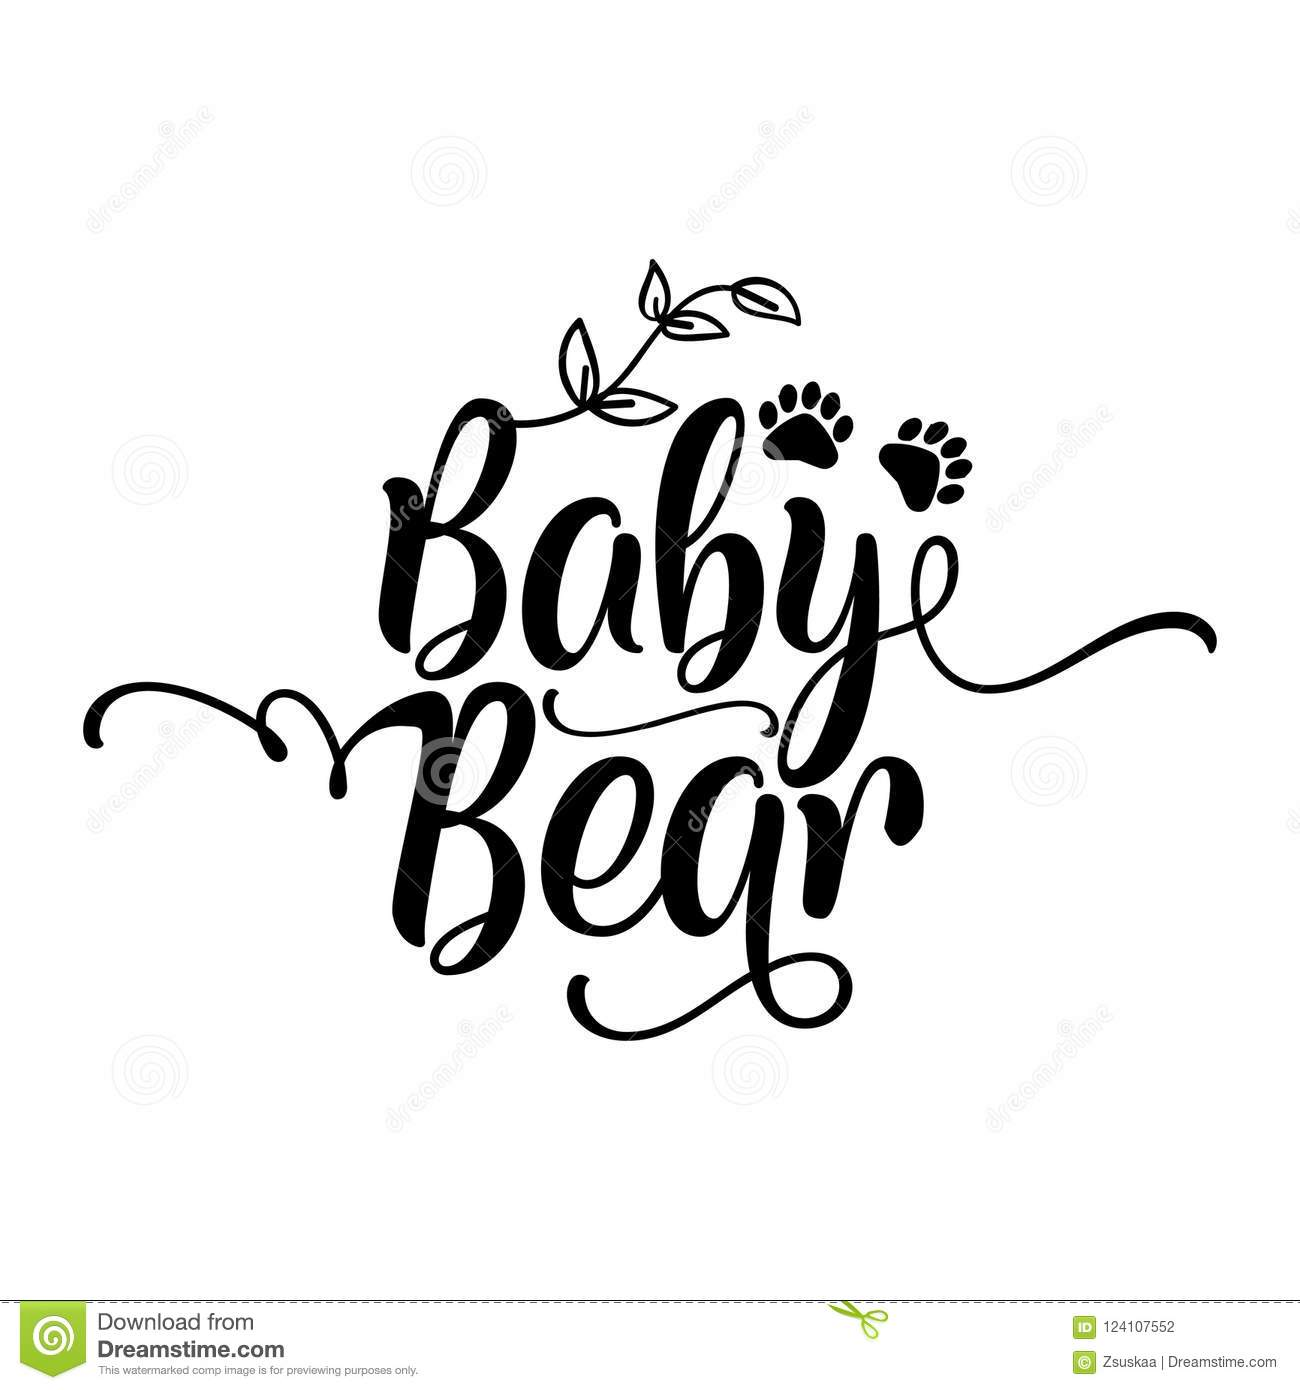 Baby Bear - Handmade calligraphy vector quote